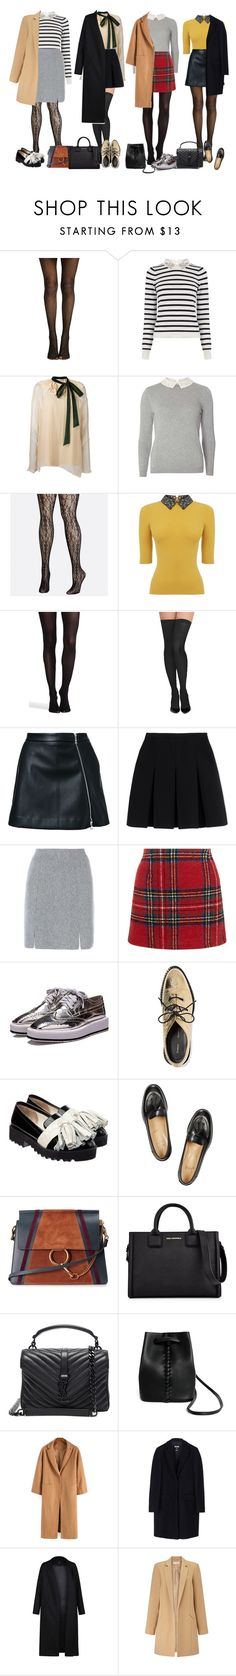 """school girl"" by audrey-balt on Polyvore featuring Oasis, Chloé, Dorothy Perkins, Avenue, SPANX, Commando, Guild Prime, Alexander Wang, D.Exterior and New Look"